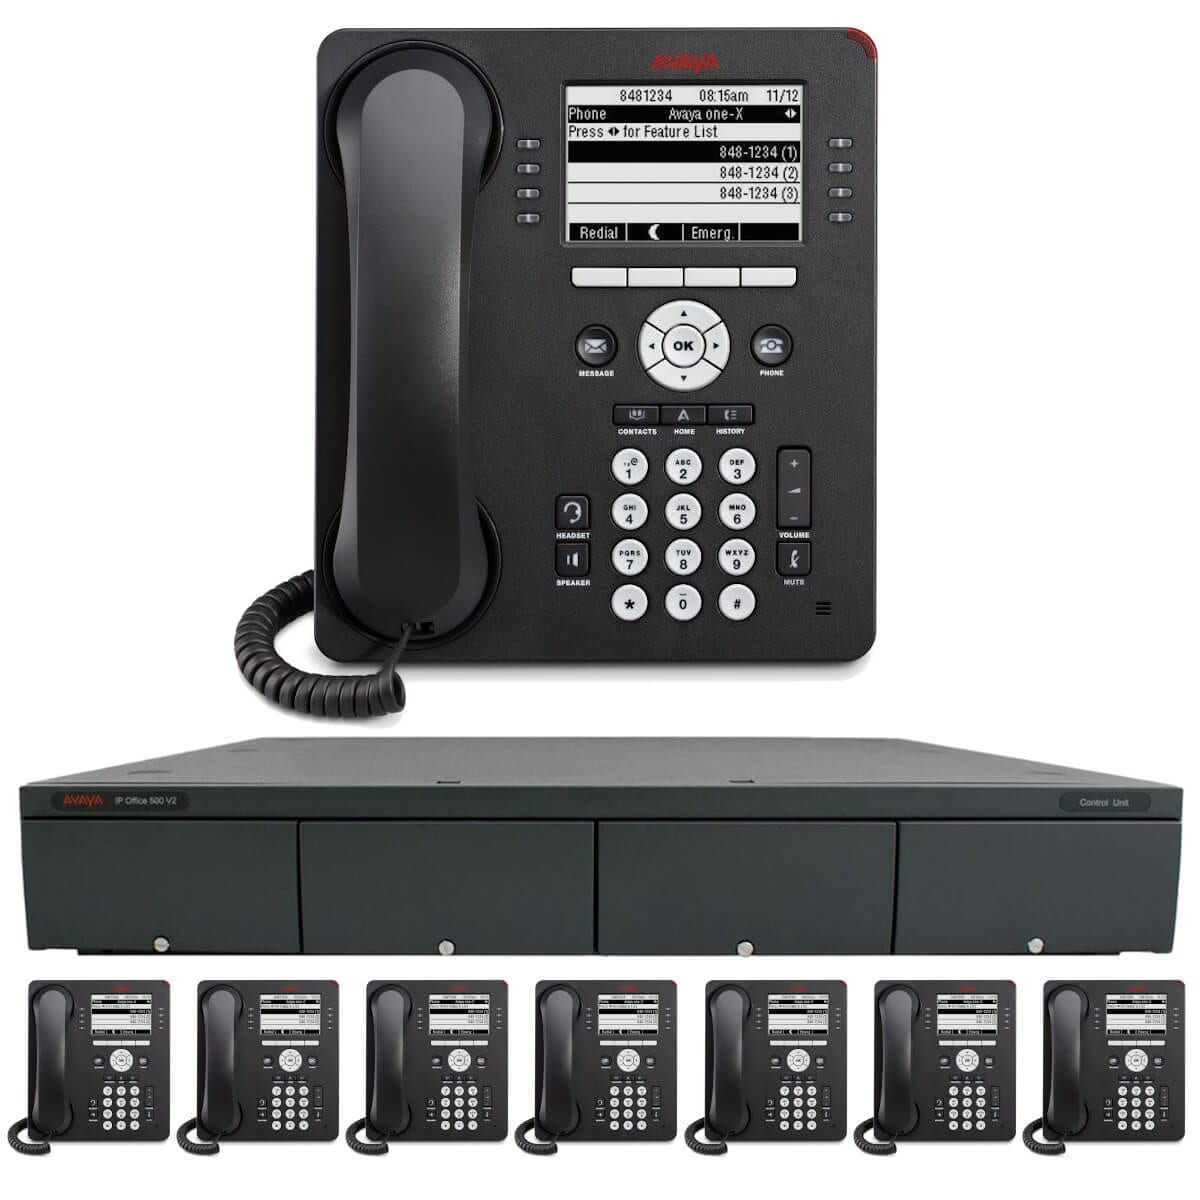 Avaya ip 500 Phone Sytem